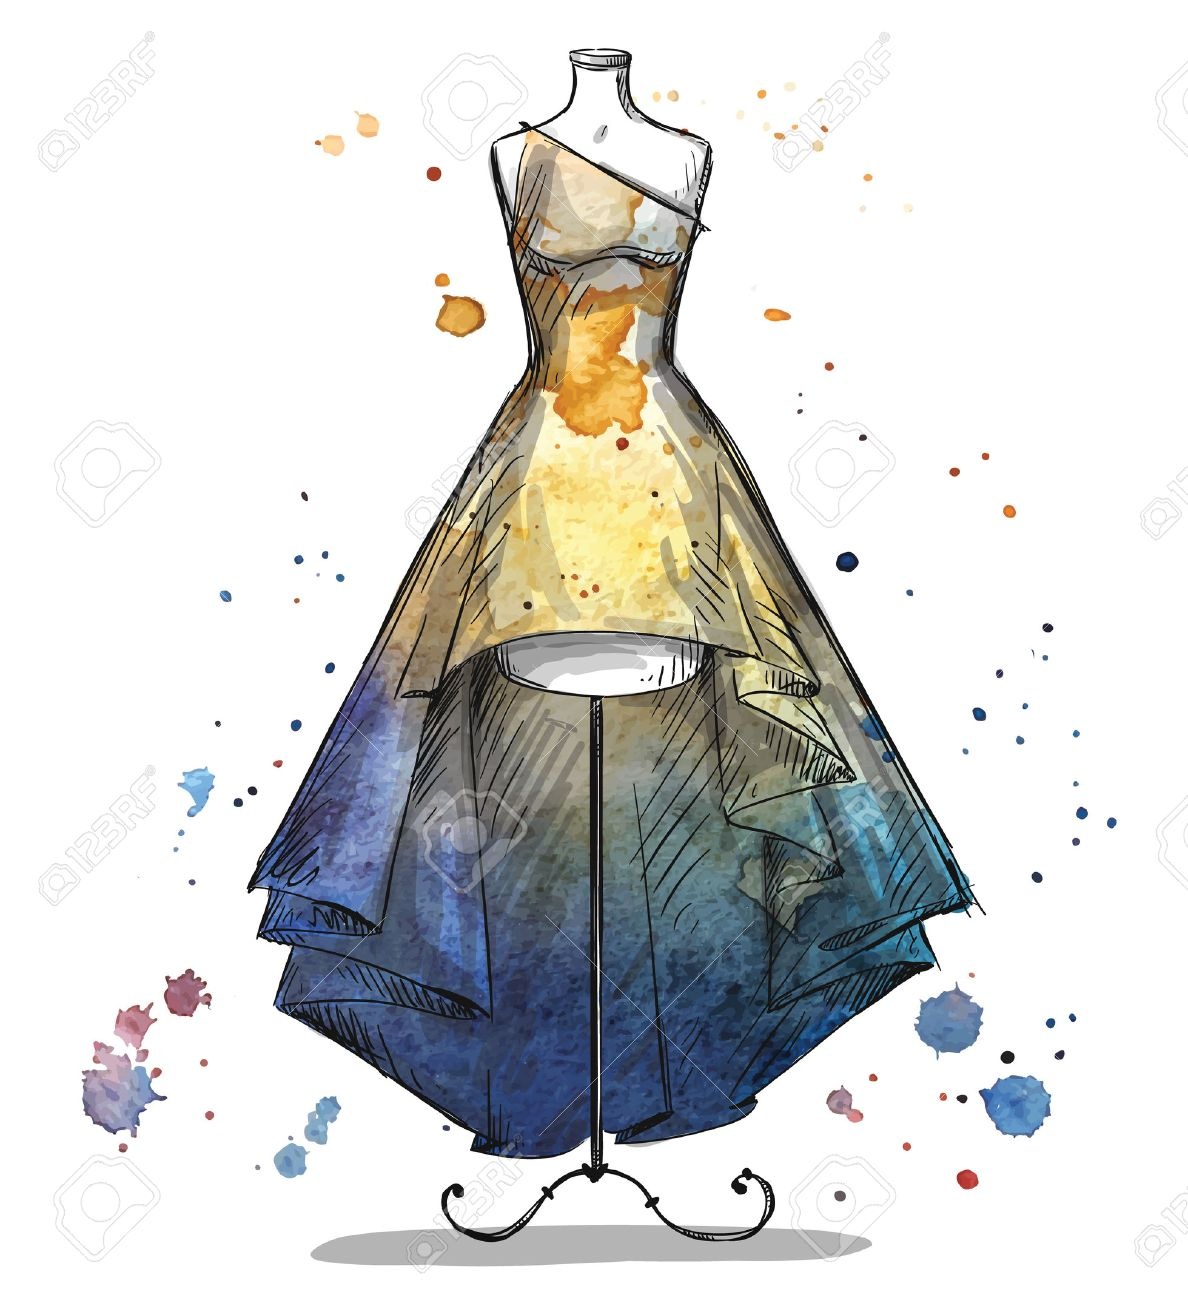 Mannequin With A Long Dress Fashion Illustration Royalty Free Cliparts Vectors And Stock Illustration Image 37754581